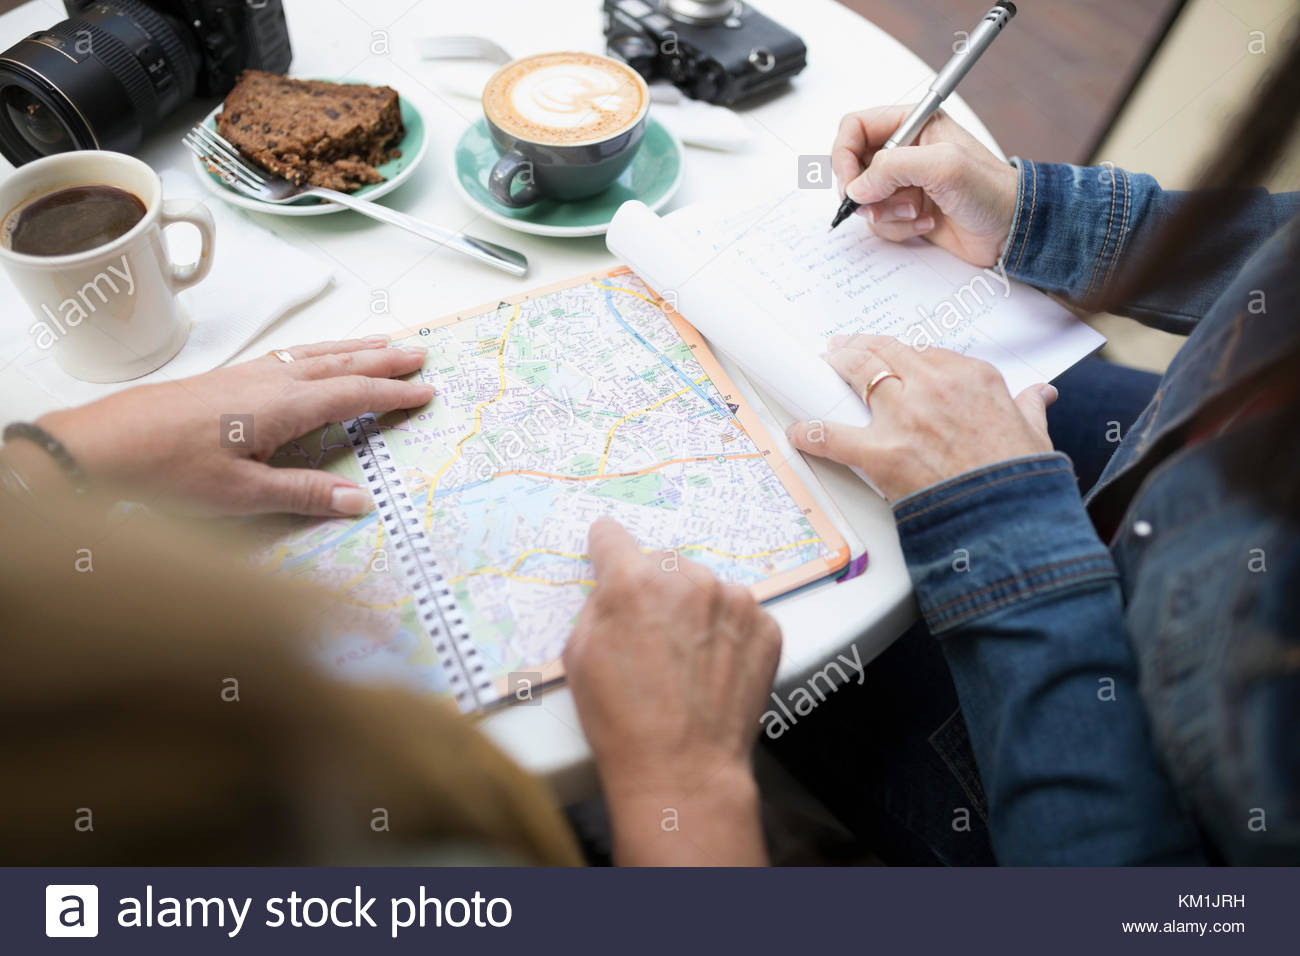 Women friends planning with map, drinking coffee at sidewalk cafe - Stock Image